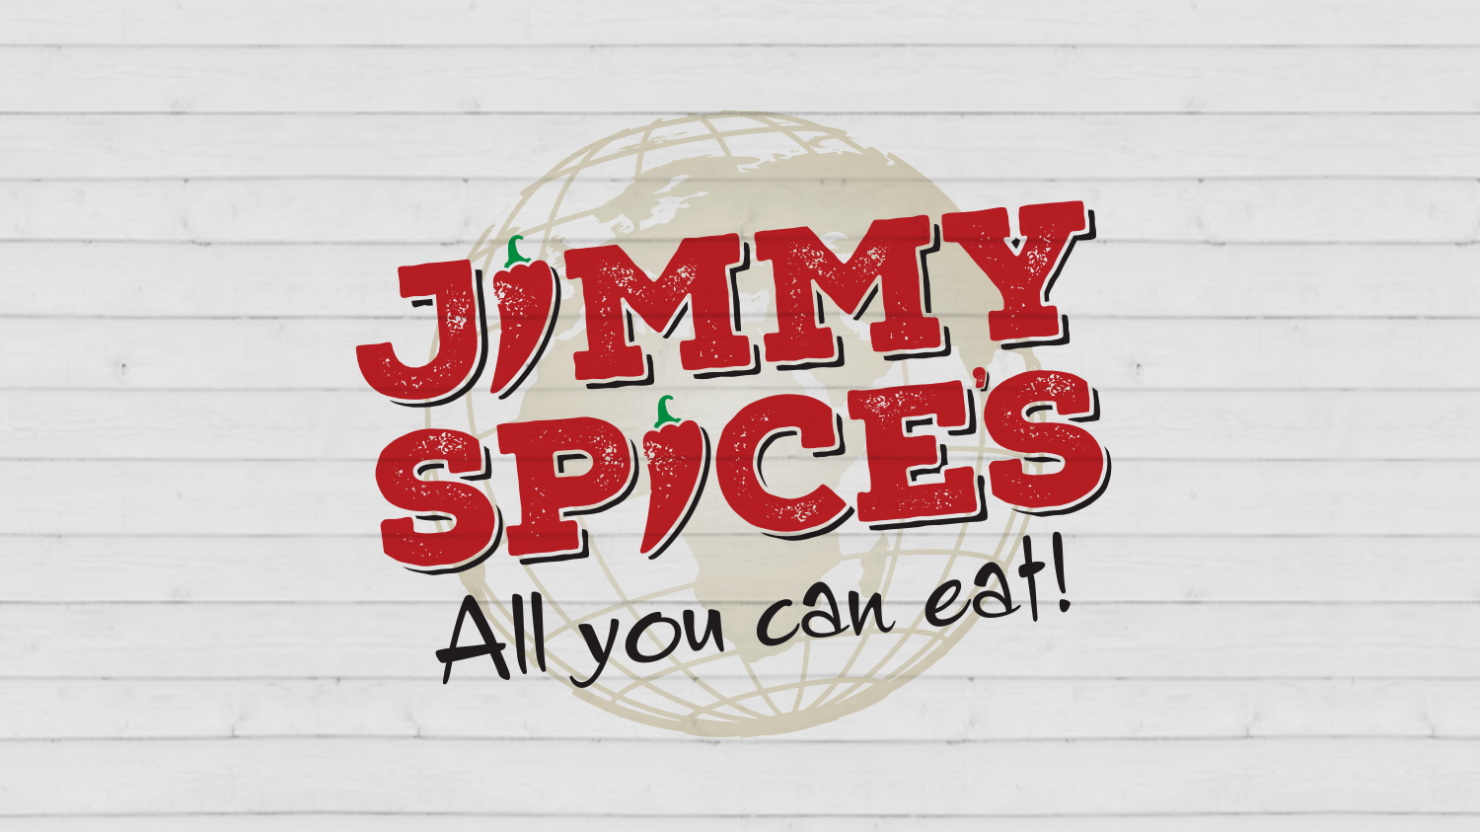 Creative restaurant branding for Birmingham restaurant Jimmy Spices